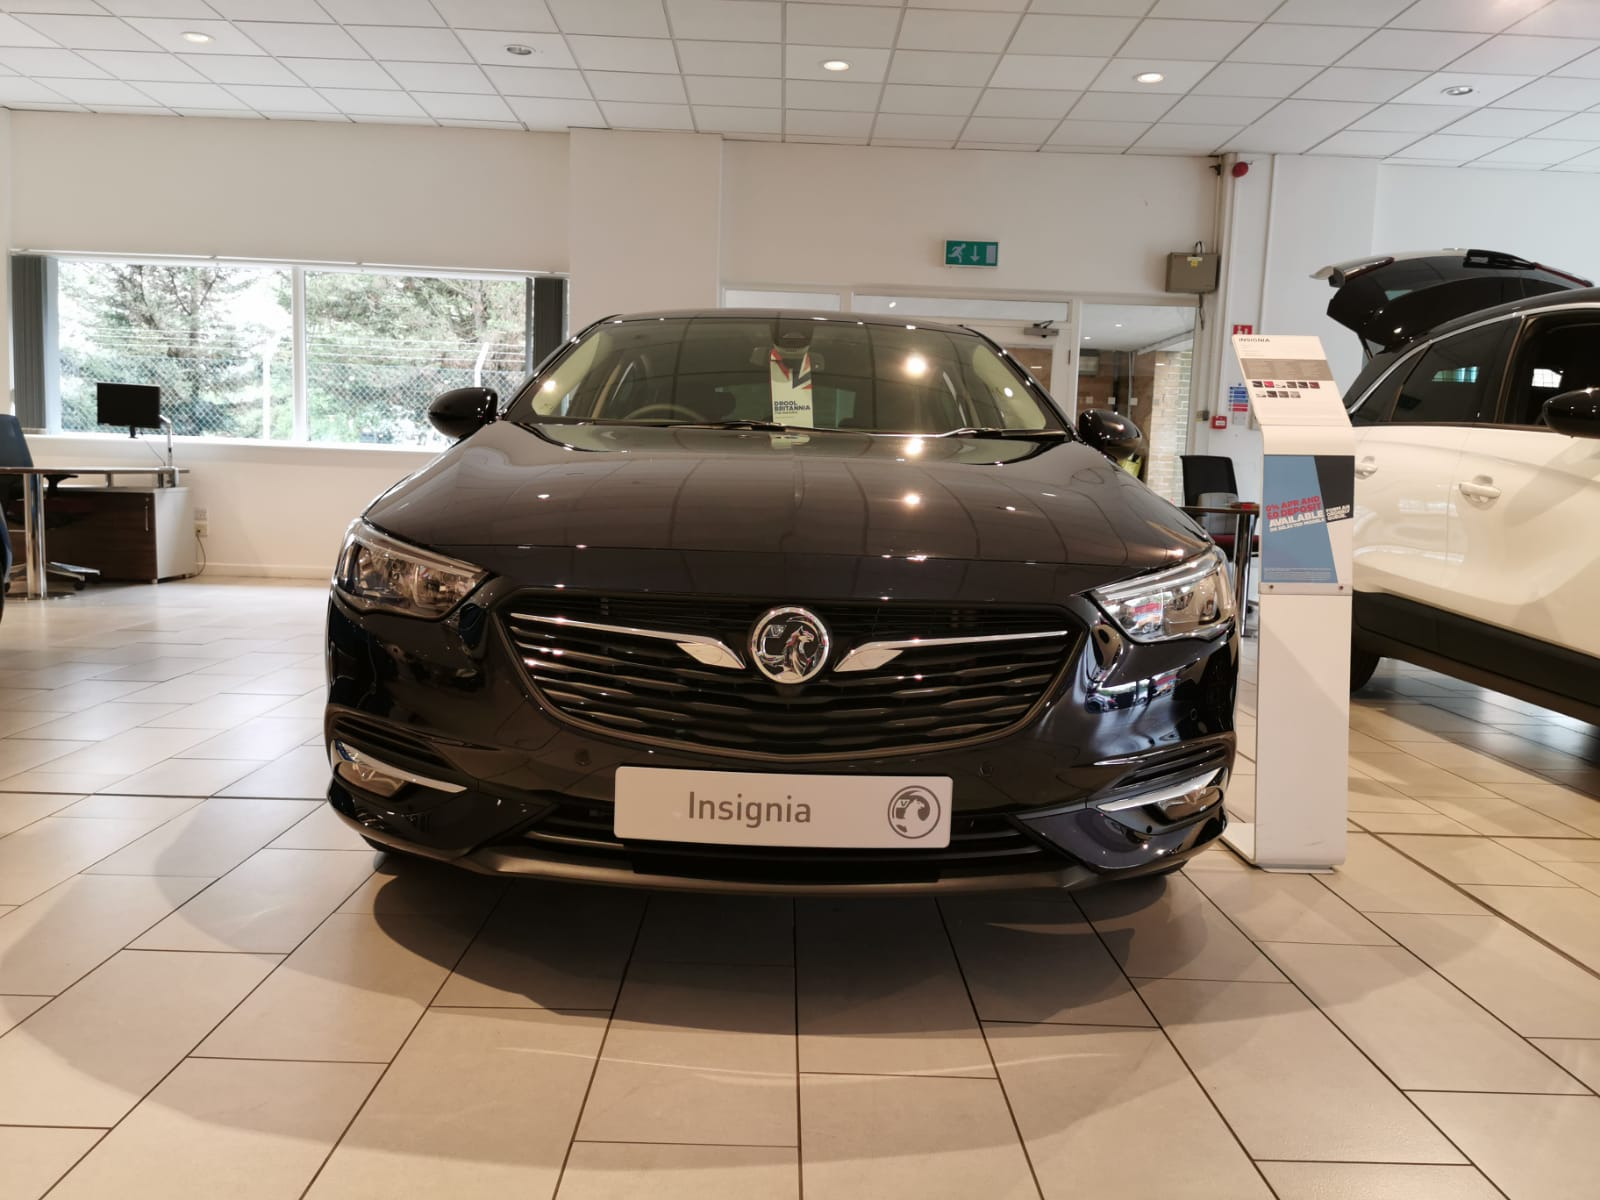 Vauxhall Insignia 1.5T SRi 5dr image 2